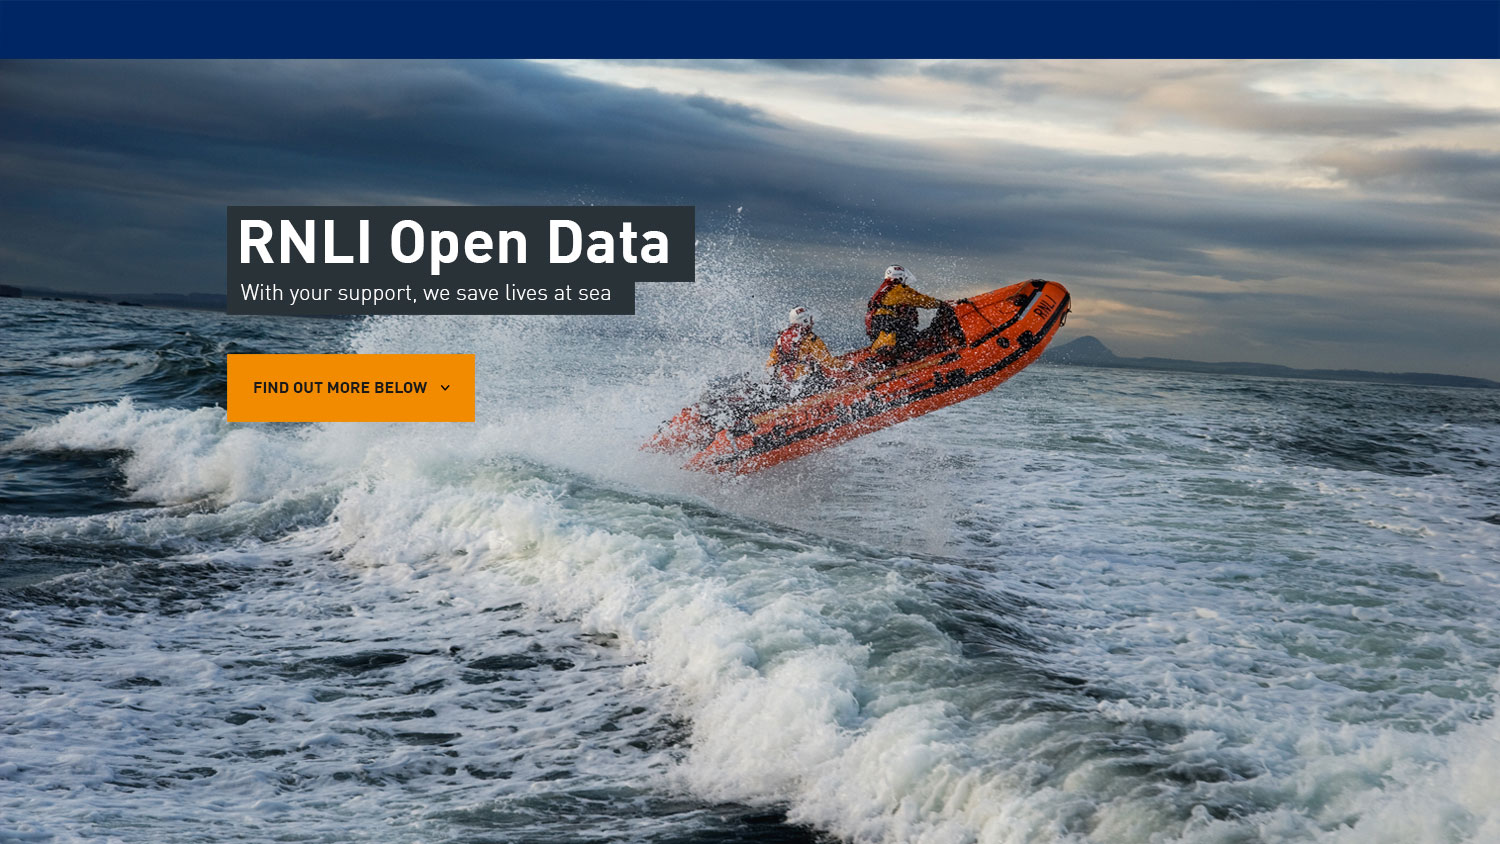 rnli's open data home page